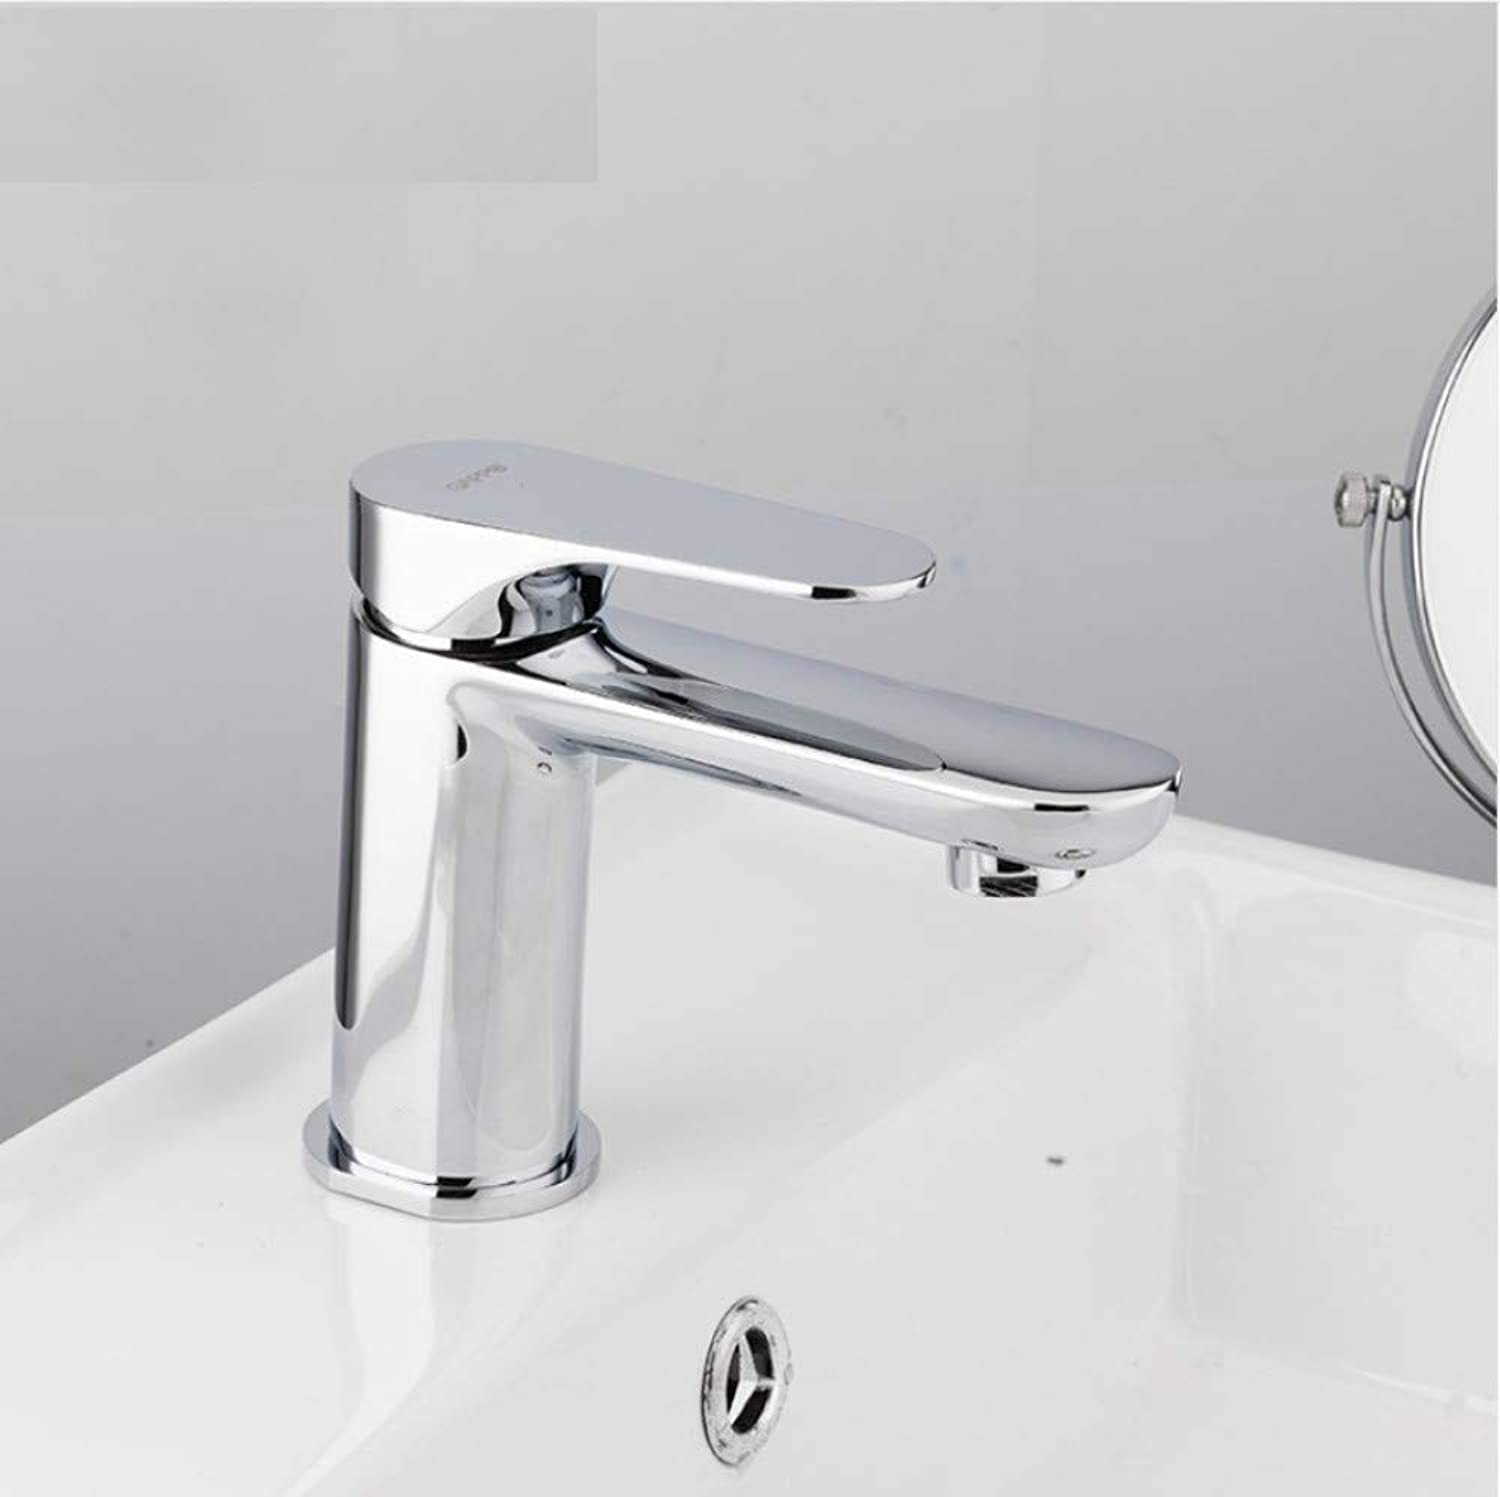 Dwthh Basin Faucets Waterfall Basin Mixer Sink Taps Faucet Bathroom Deck Mounted Sink Water Taps Waterfall Faucet